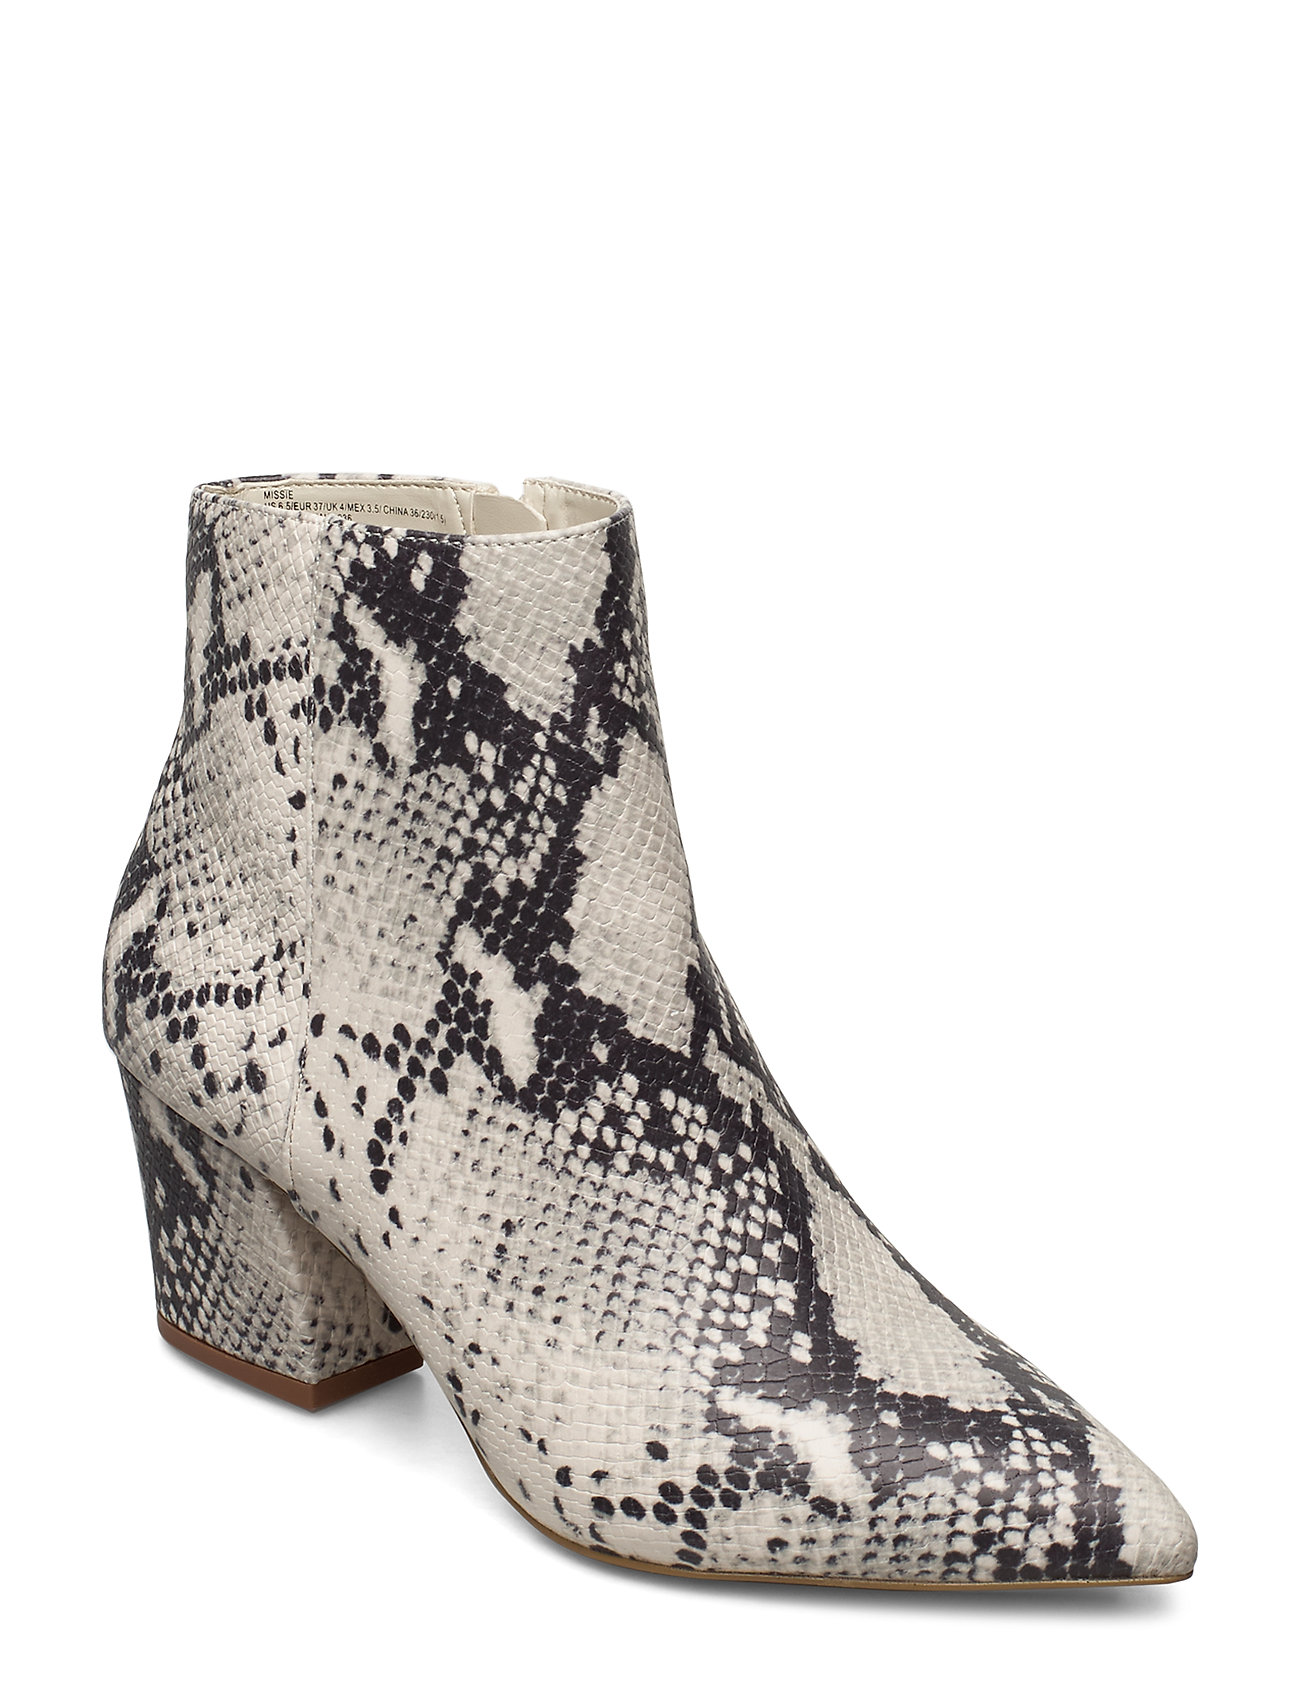 Image of Missie Bootie Shoes Boots Ankle Boots Ankle Boot - Heel Creme Steve Madden (3406241811)